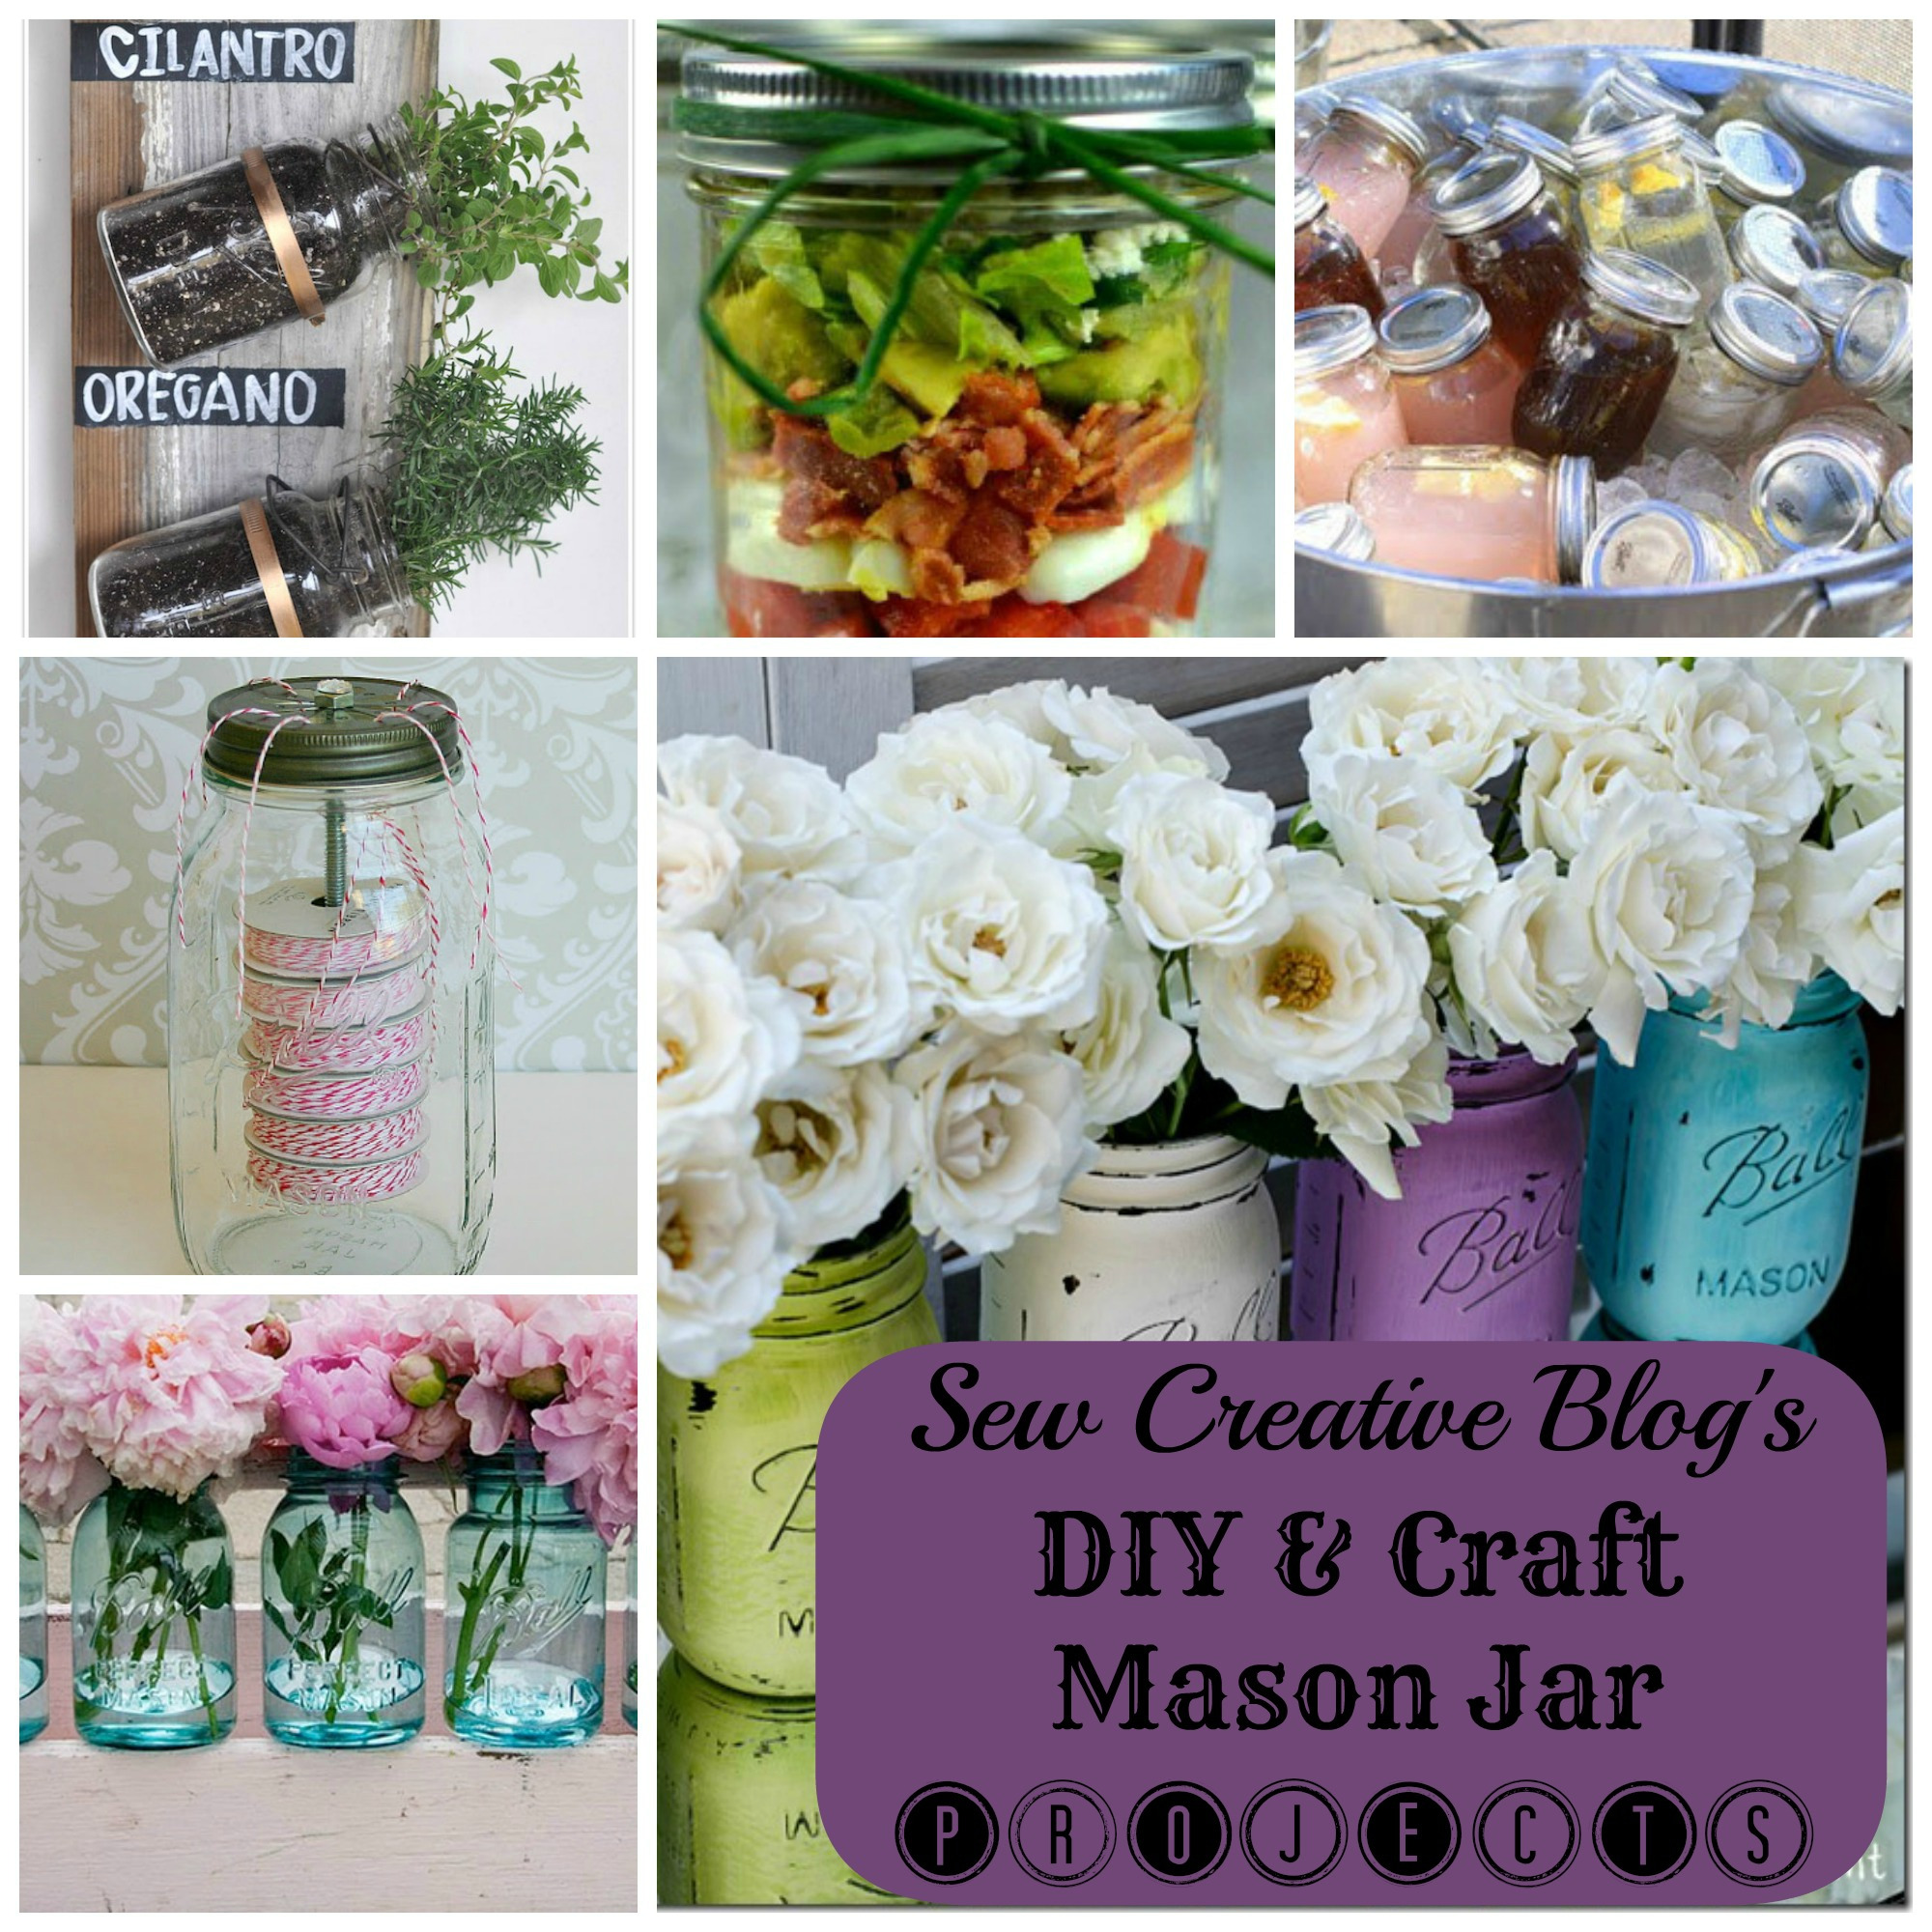 DIY and Craft Mason Jar Projects From Sew Creative